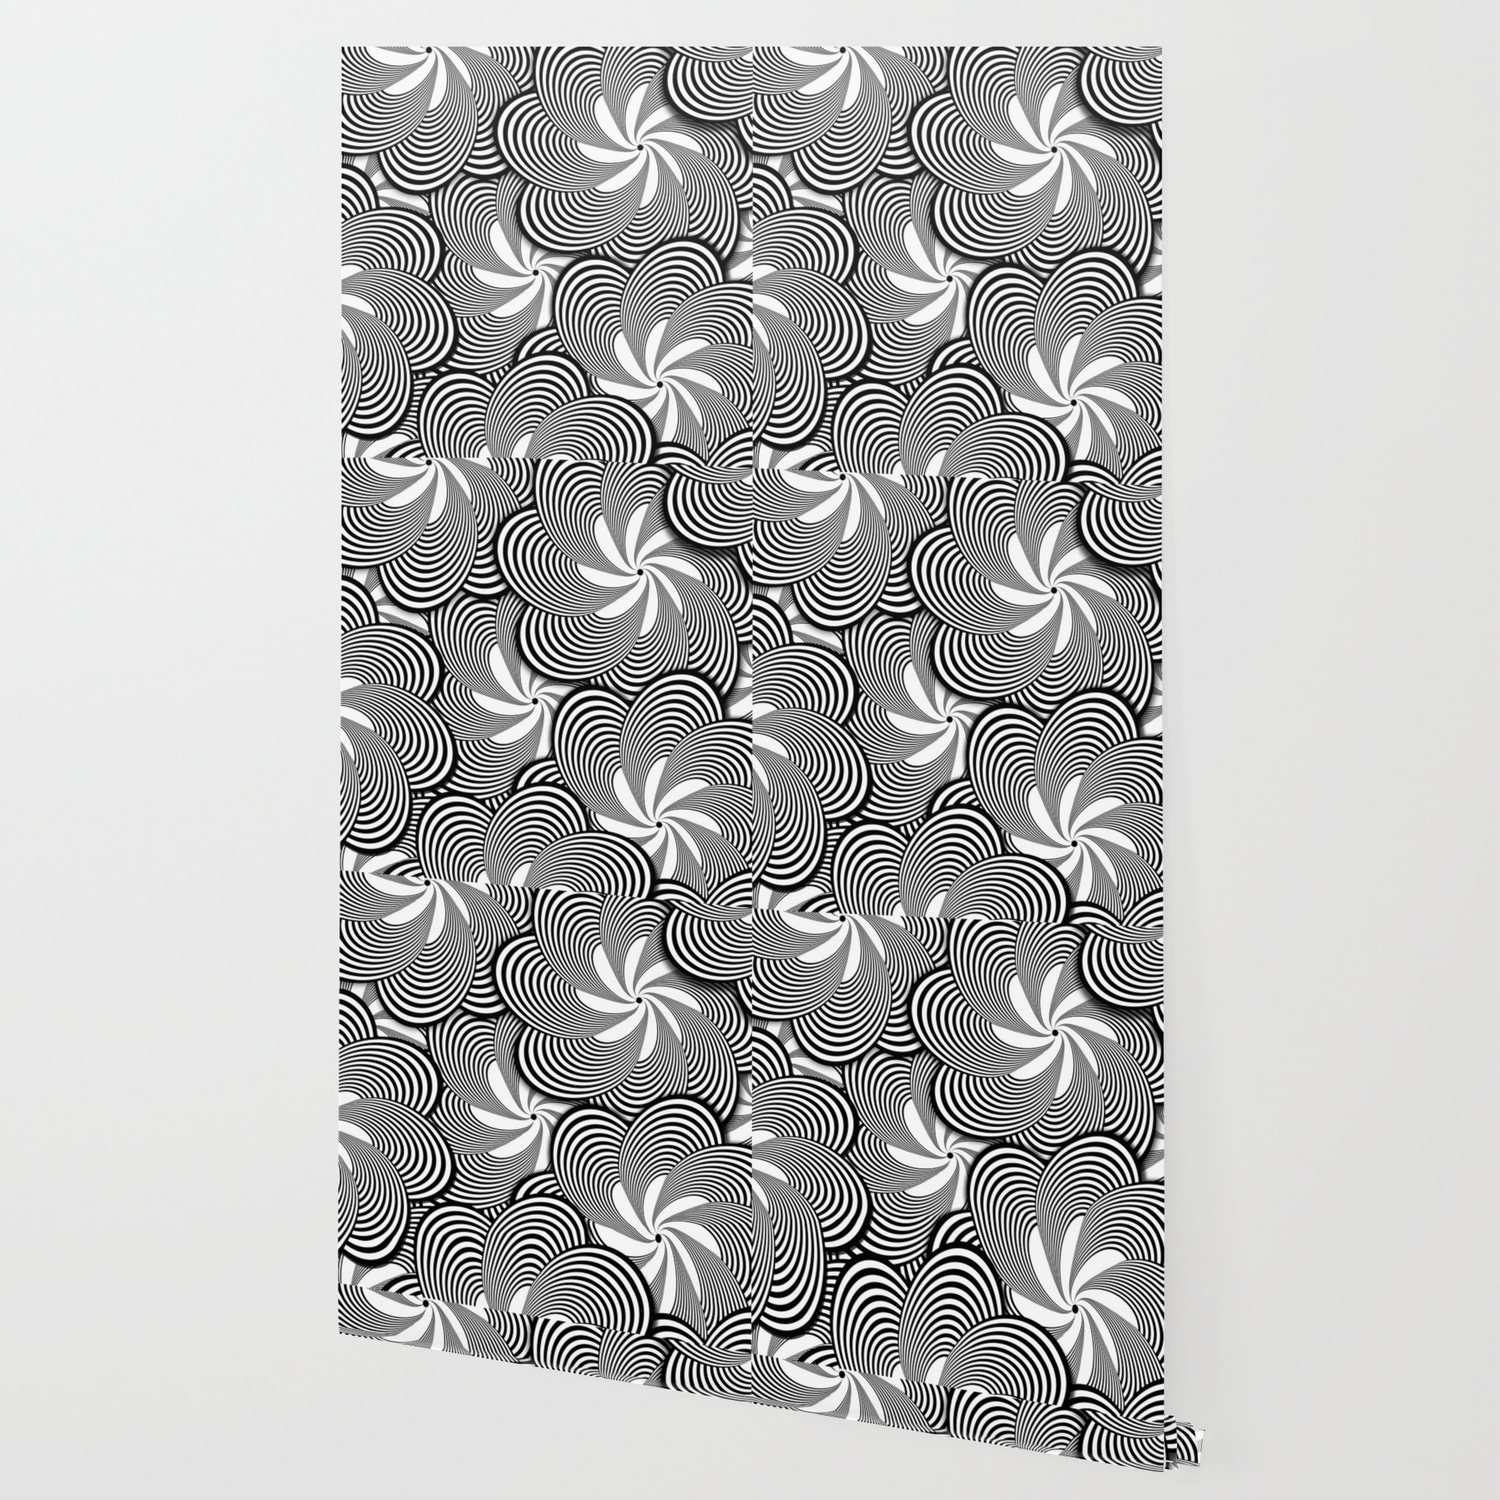 Fun Black And White Flower Pattern Digital Illustration